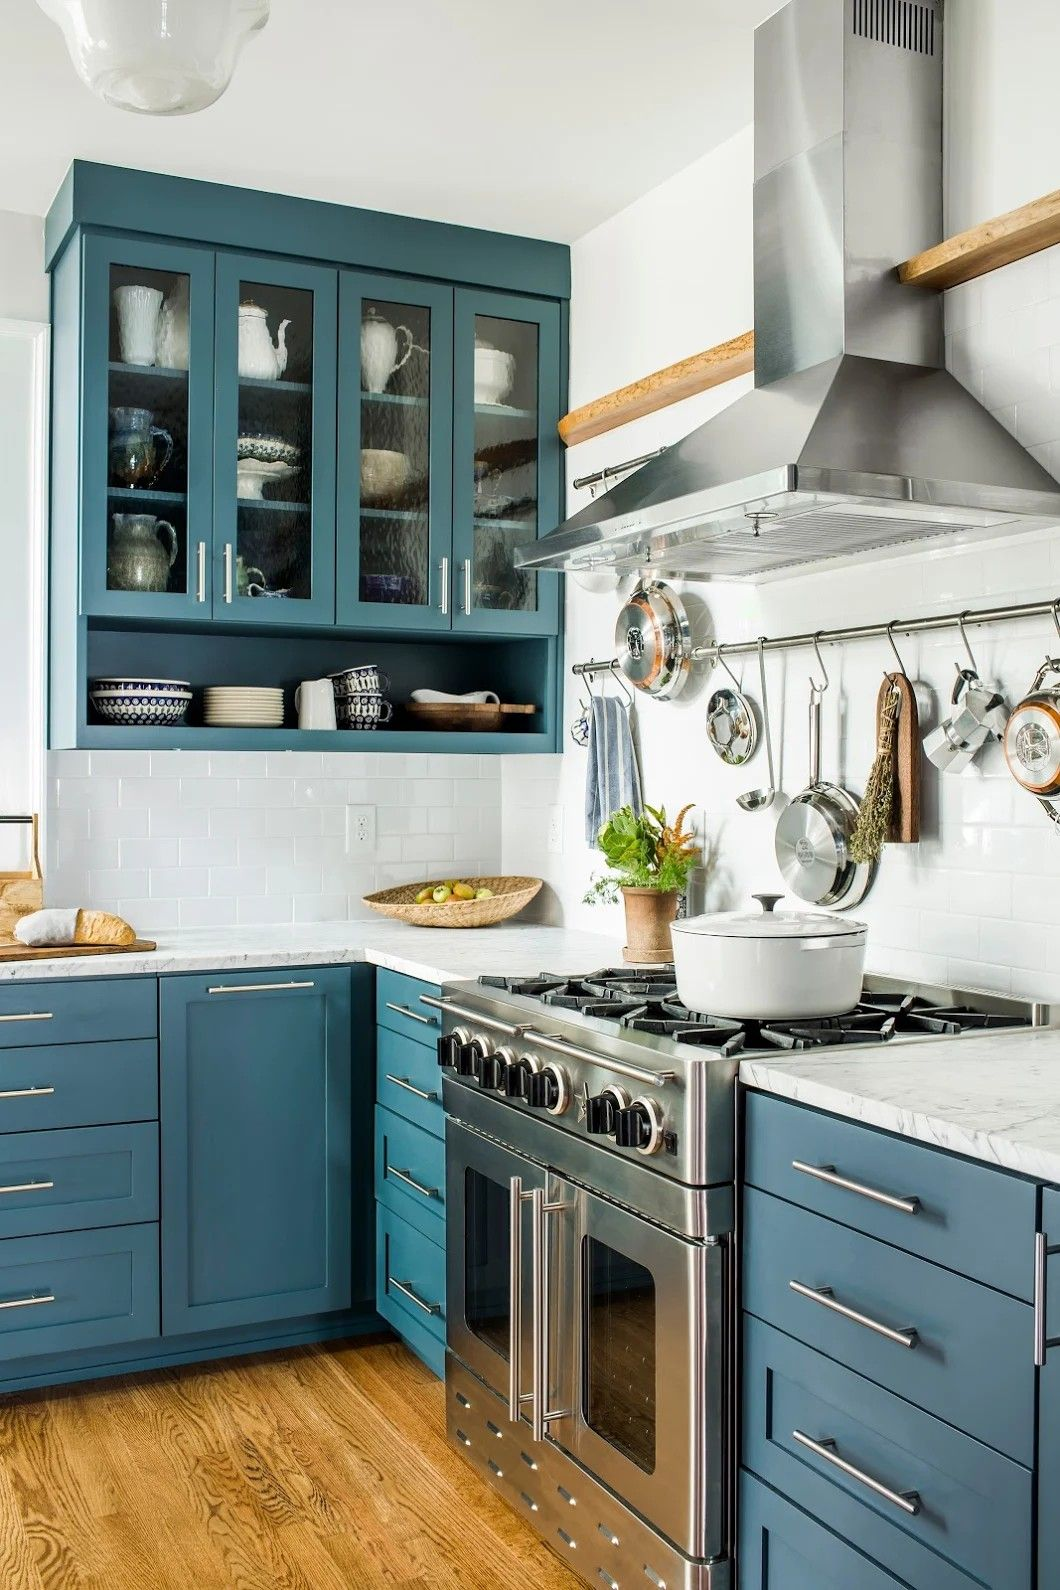 Pin By Francine Berube On Organisation Kitchen Trends Country Kitchen Cabinets Kitchen Decor Inspiration